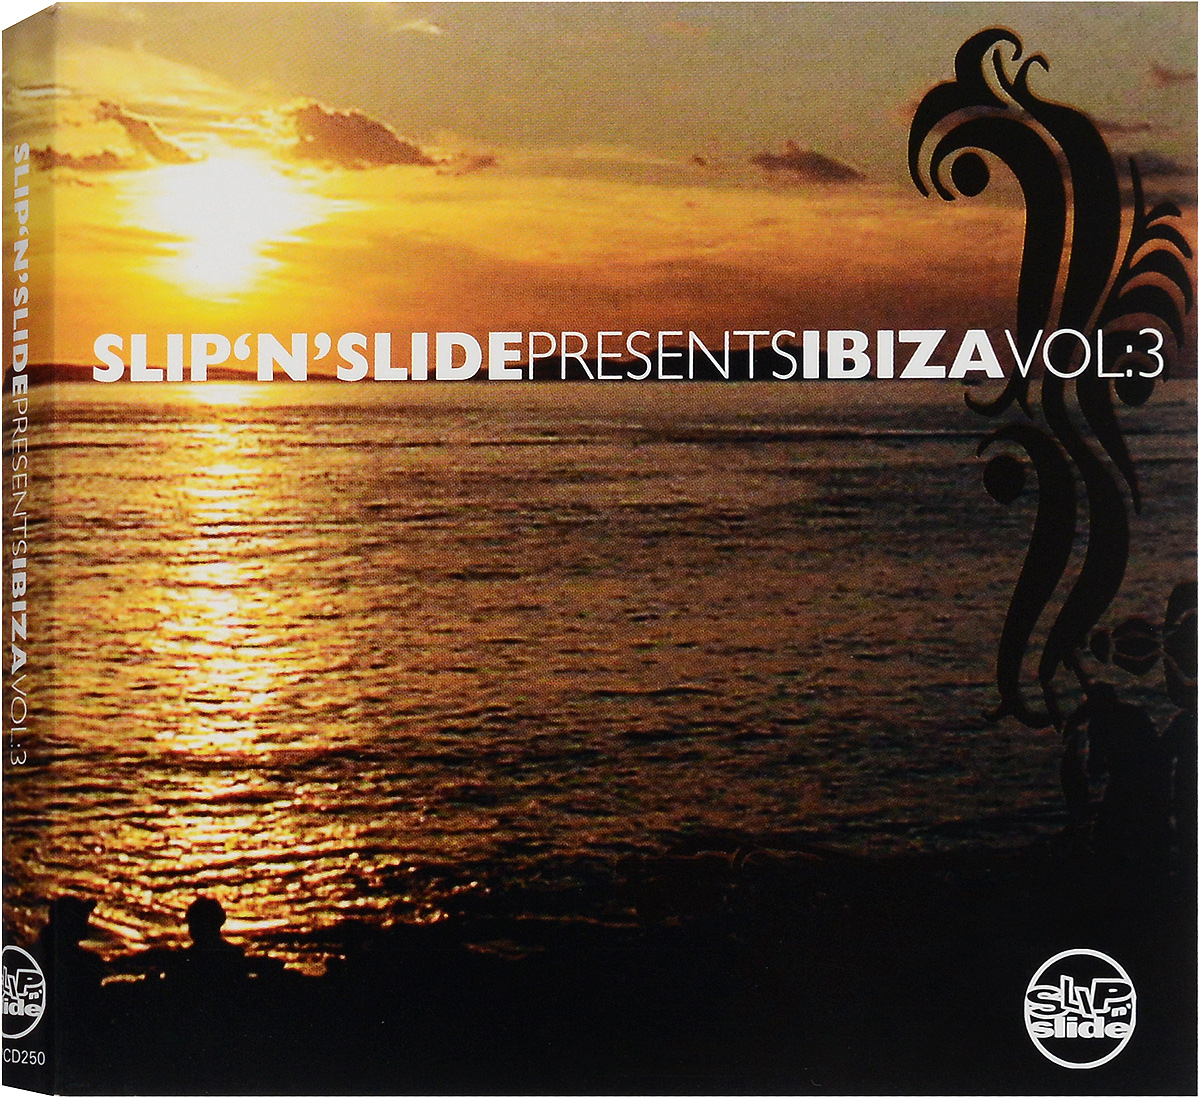 Slip N Slide Presents Ibiza Vol.3 (2 CD)